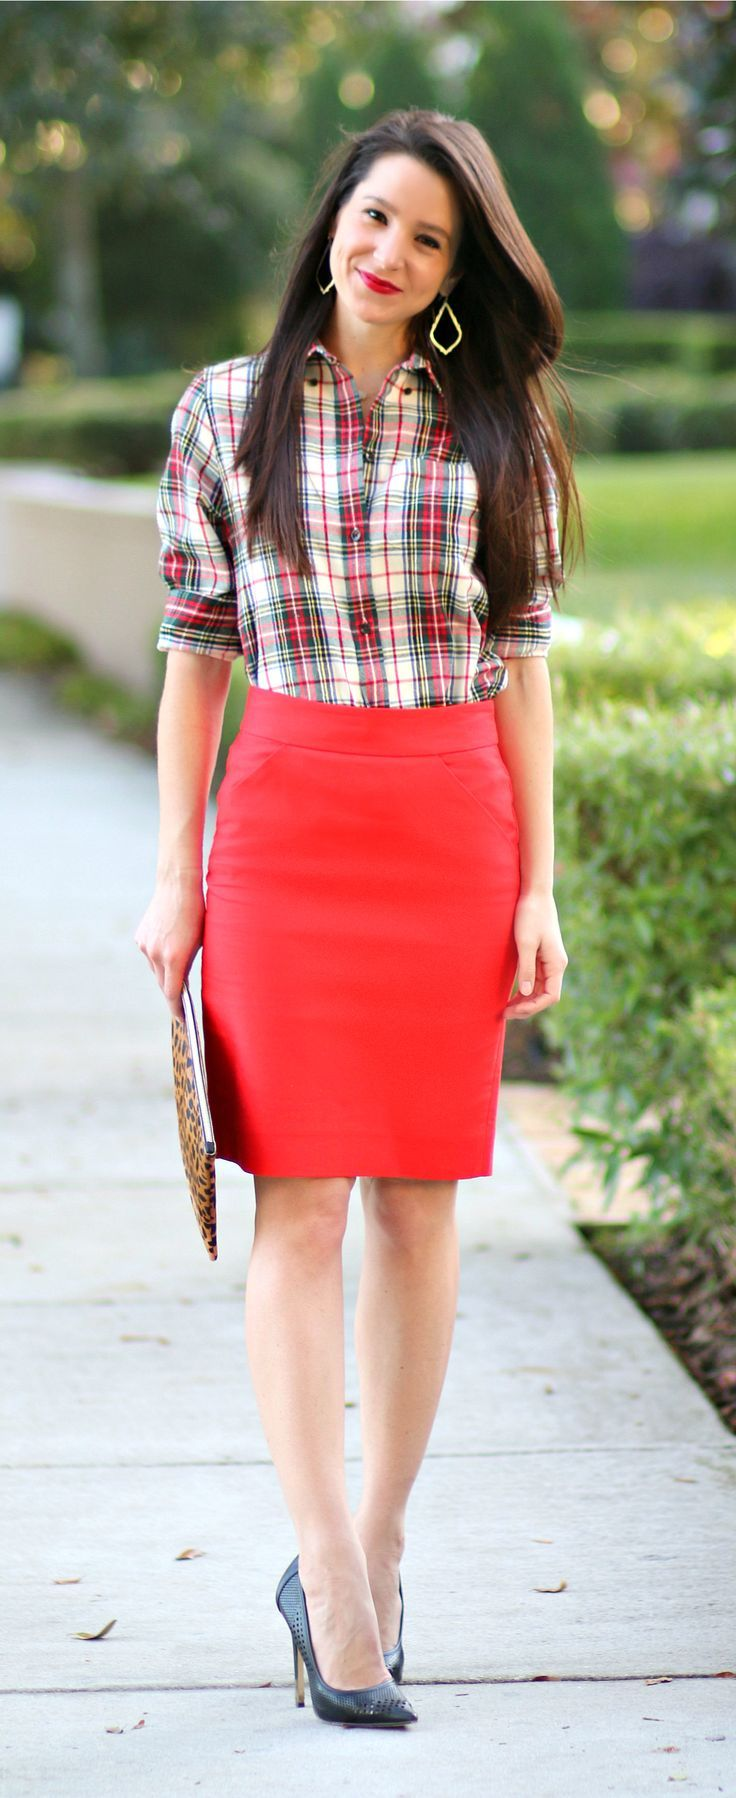 Bad Taste Outfit Vorschläge How To Wear A Red Pencil Skirt To Work Outfit Inspiration